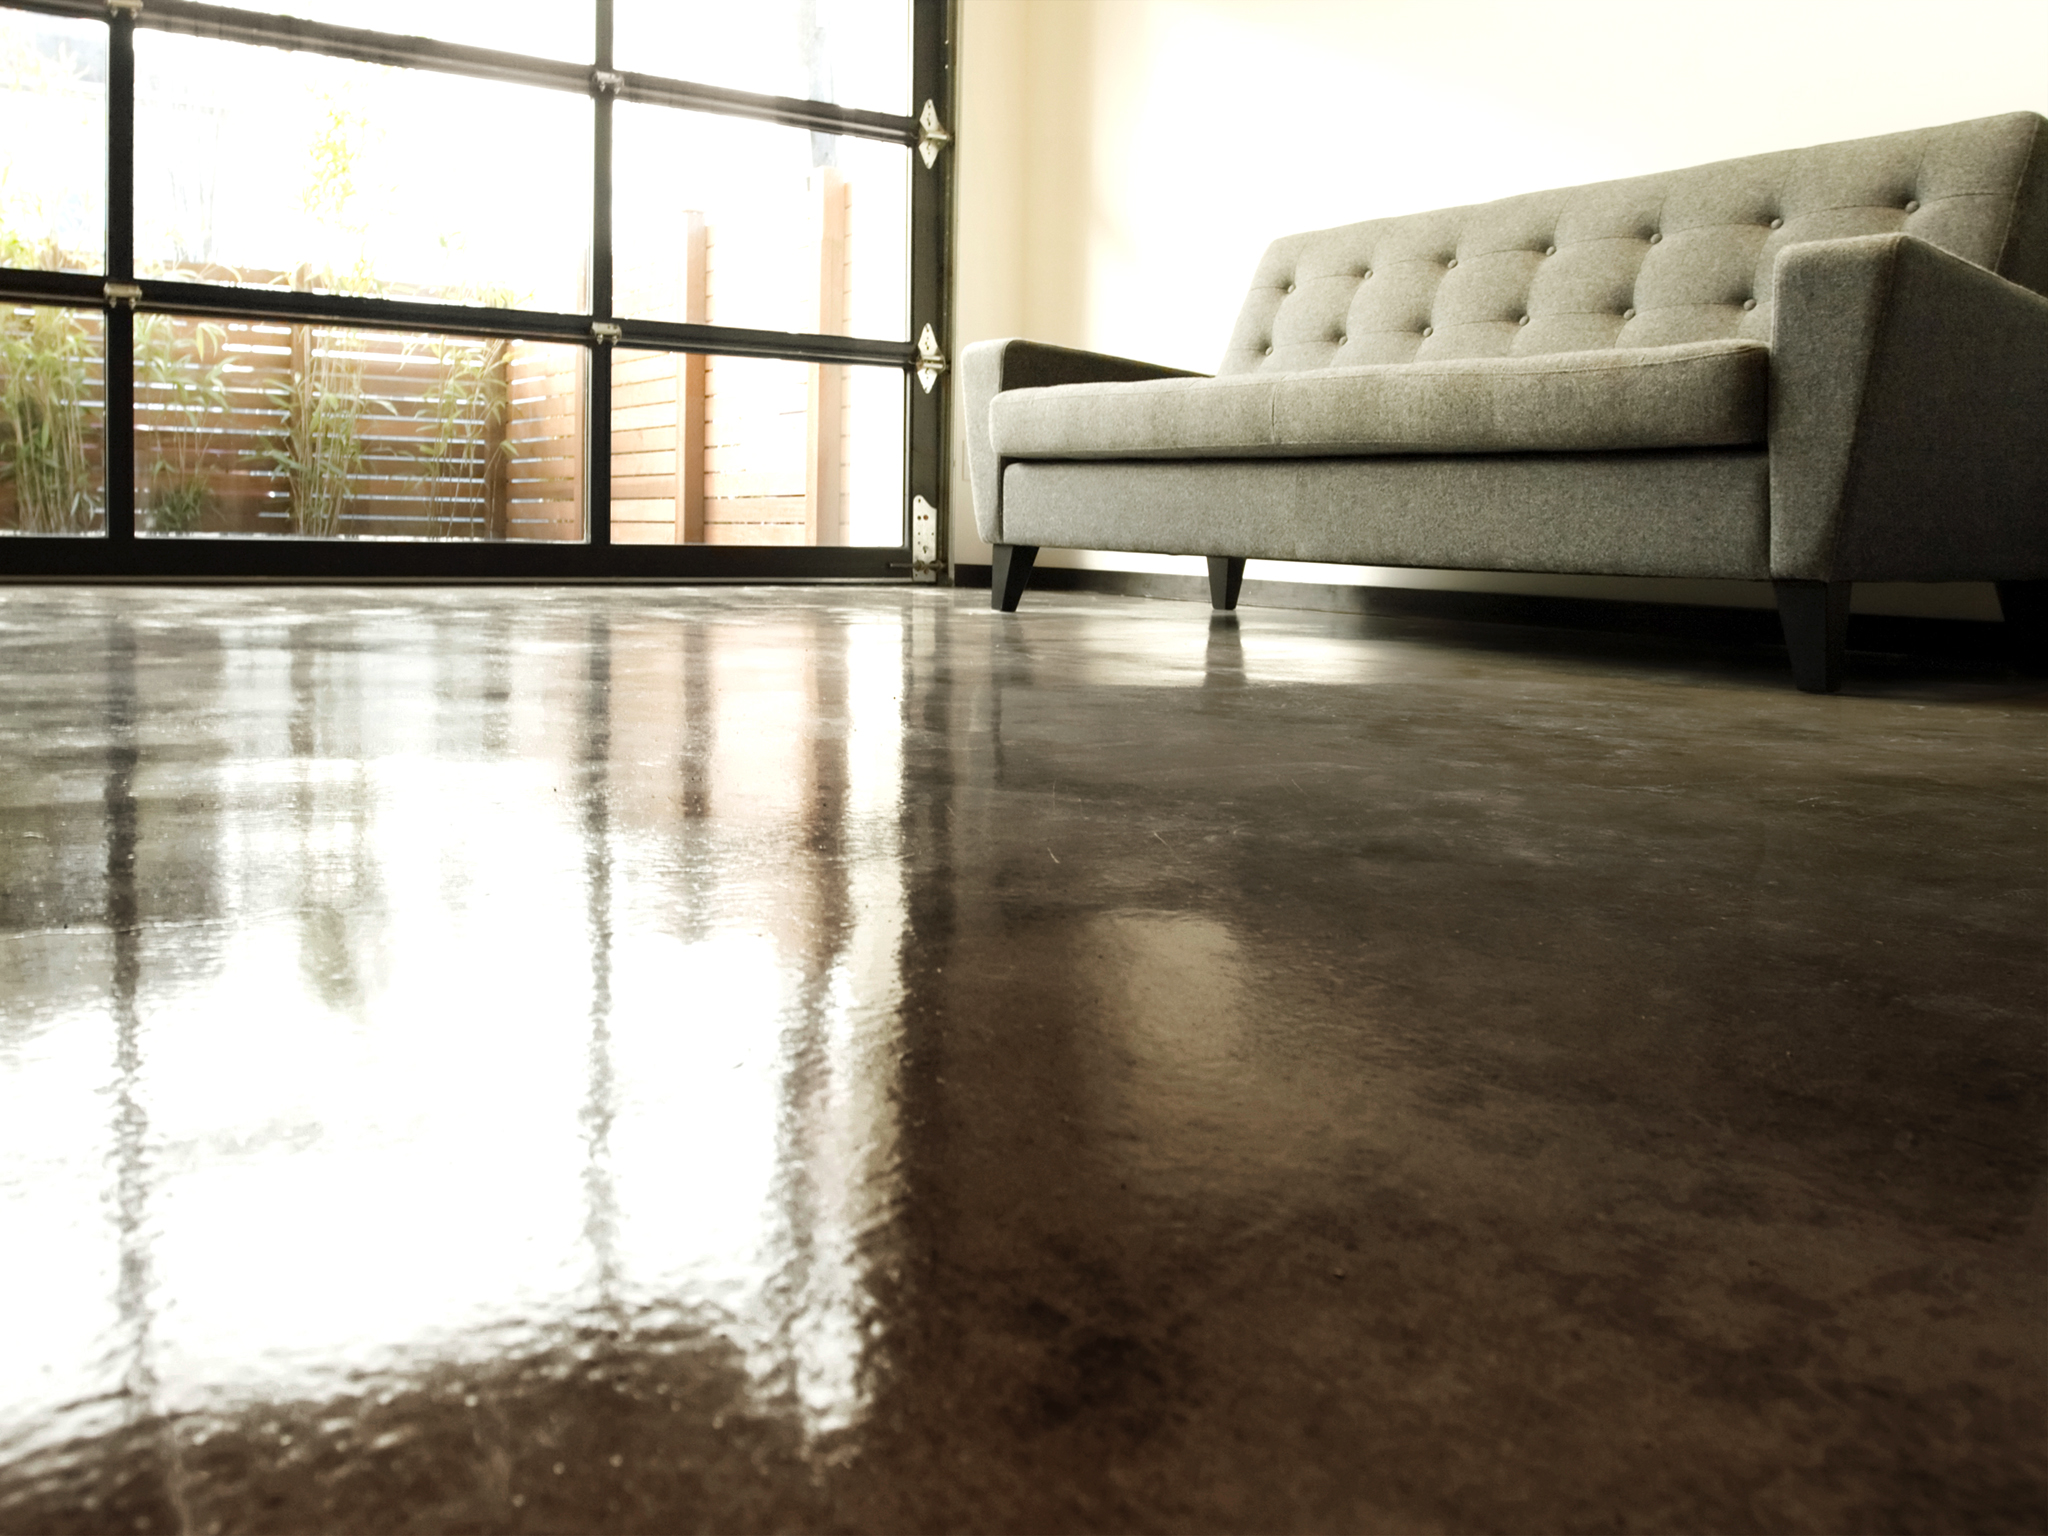 How To Apply An Acid Stain Look To Concrete Flooring